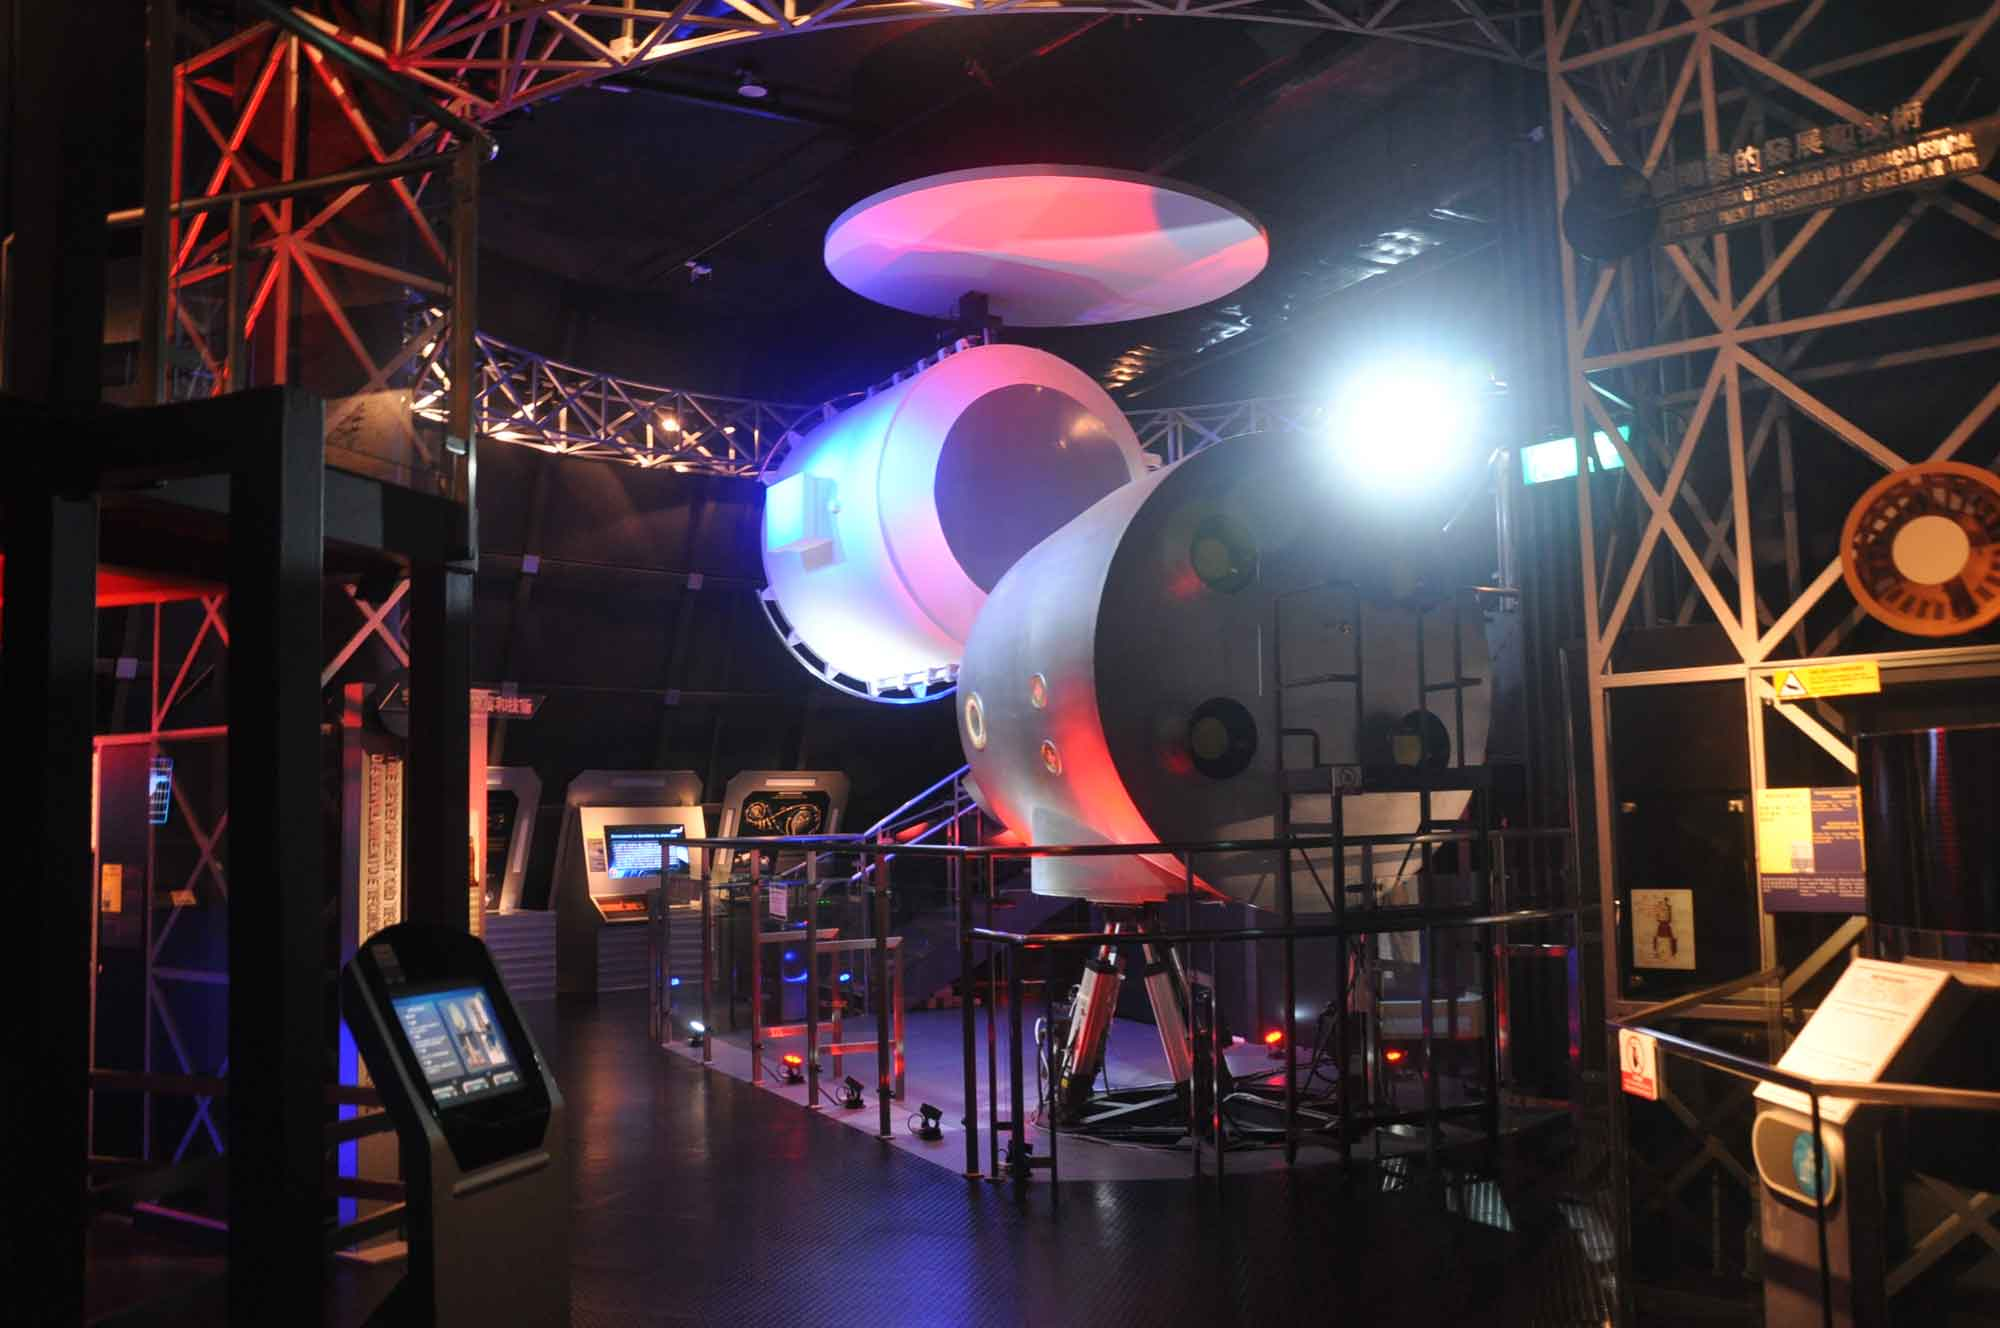 Science Center Macau space exhibition